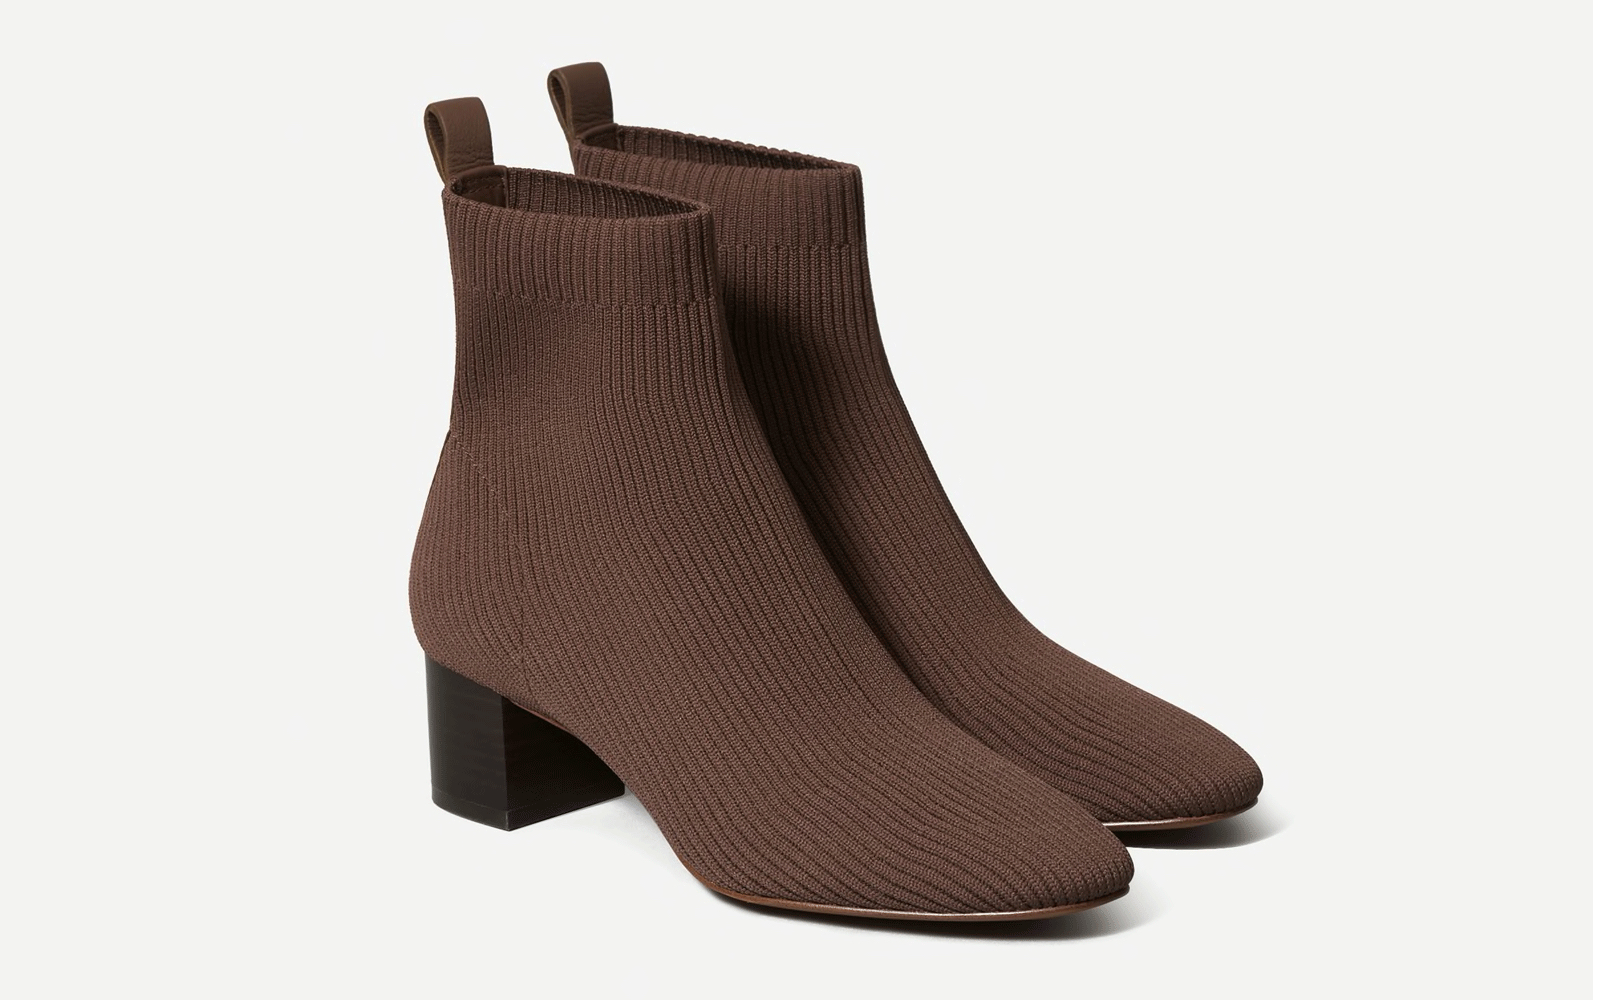 Everlane's best-selling glove boots are now available in two new colors